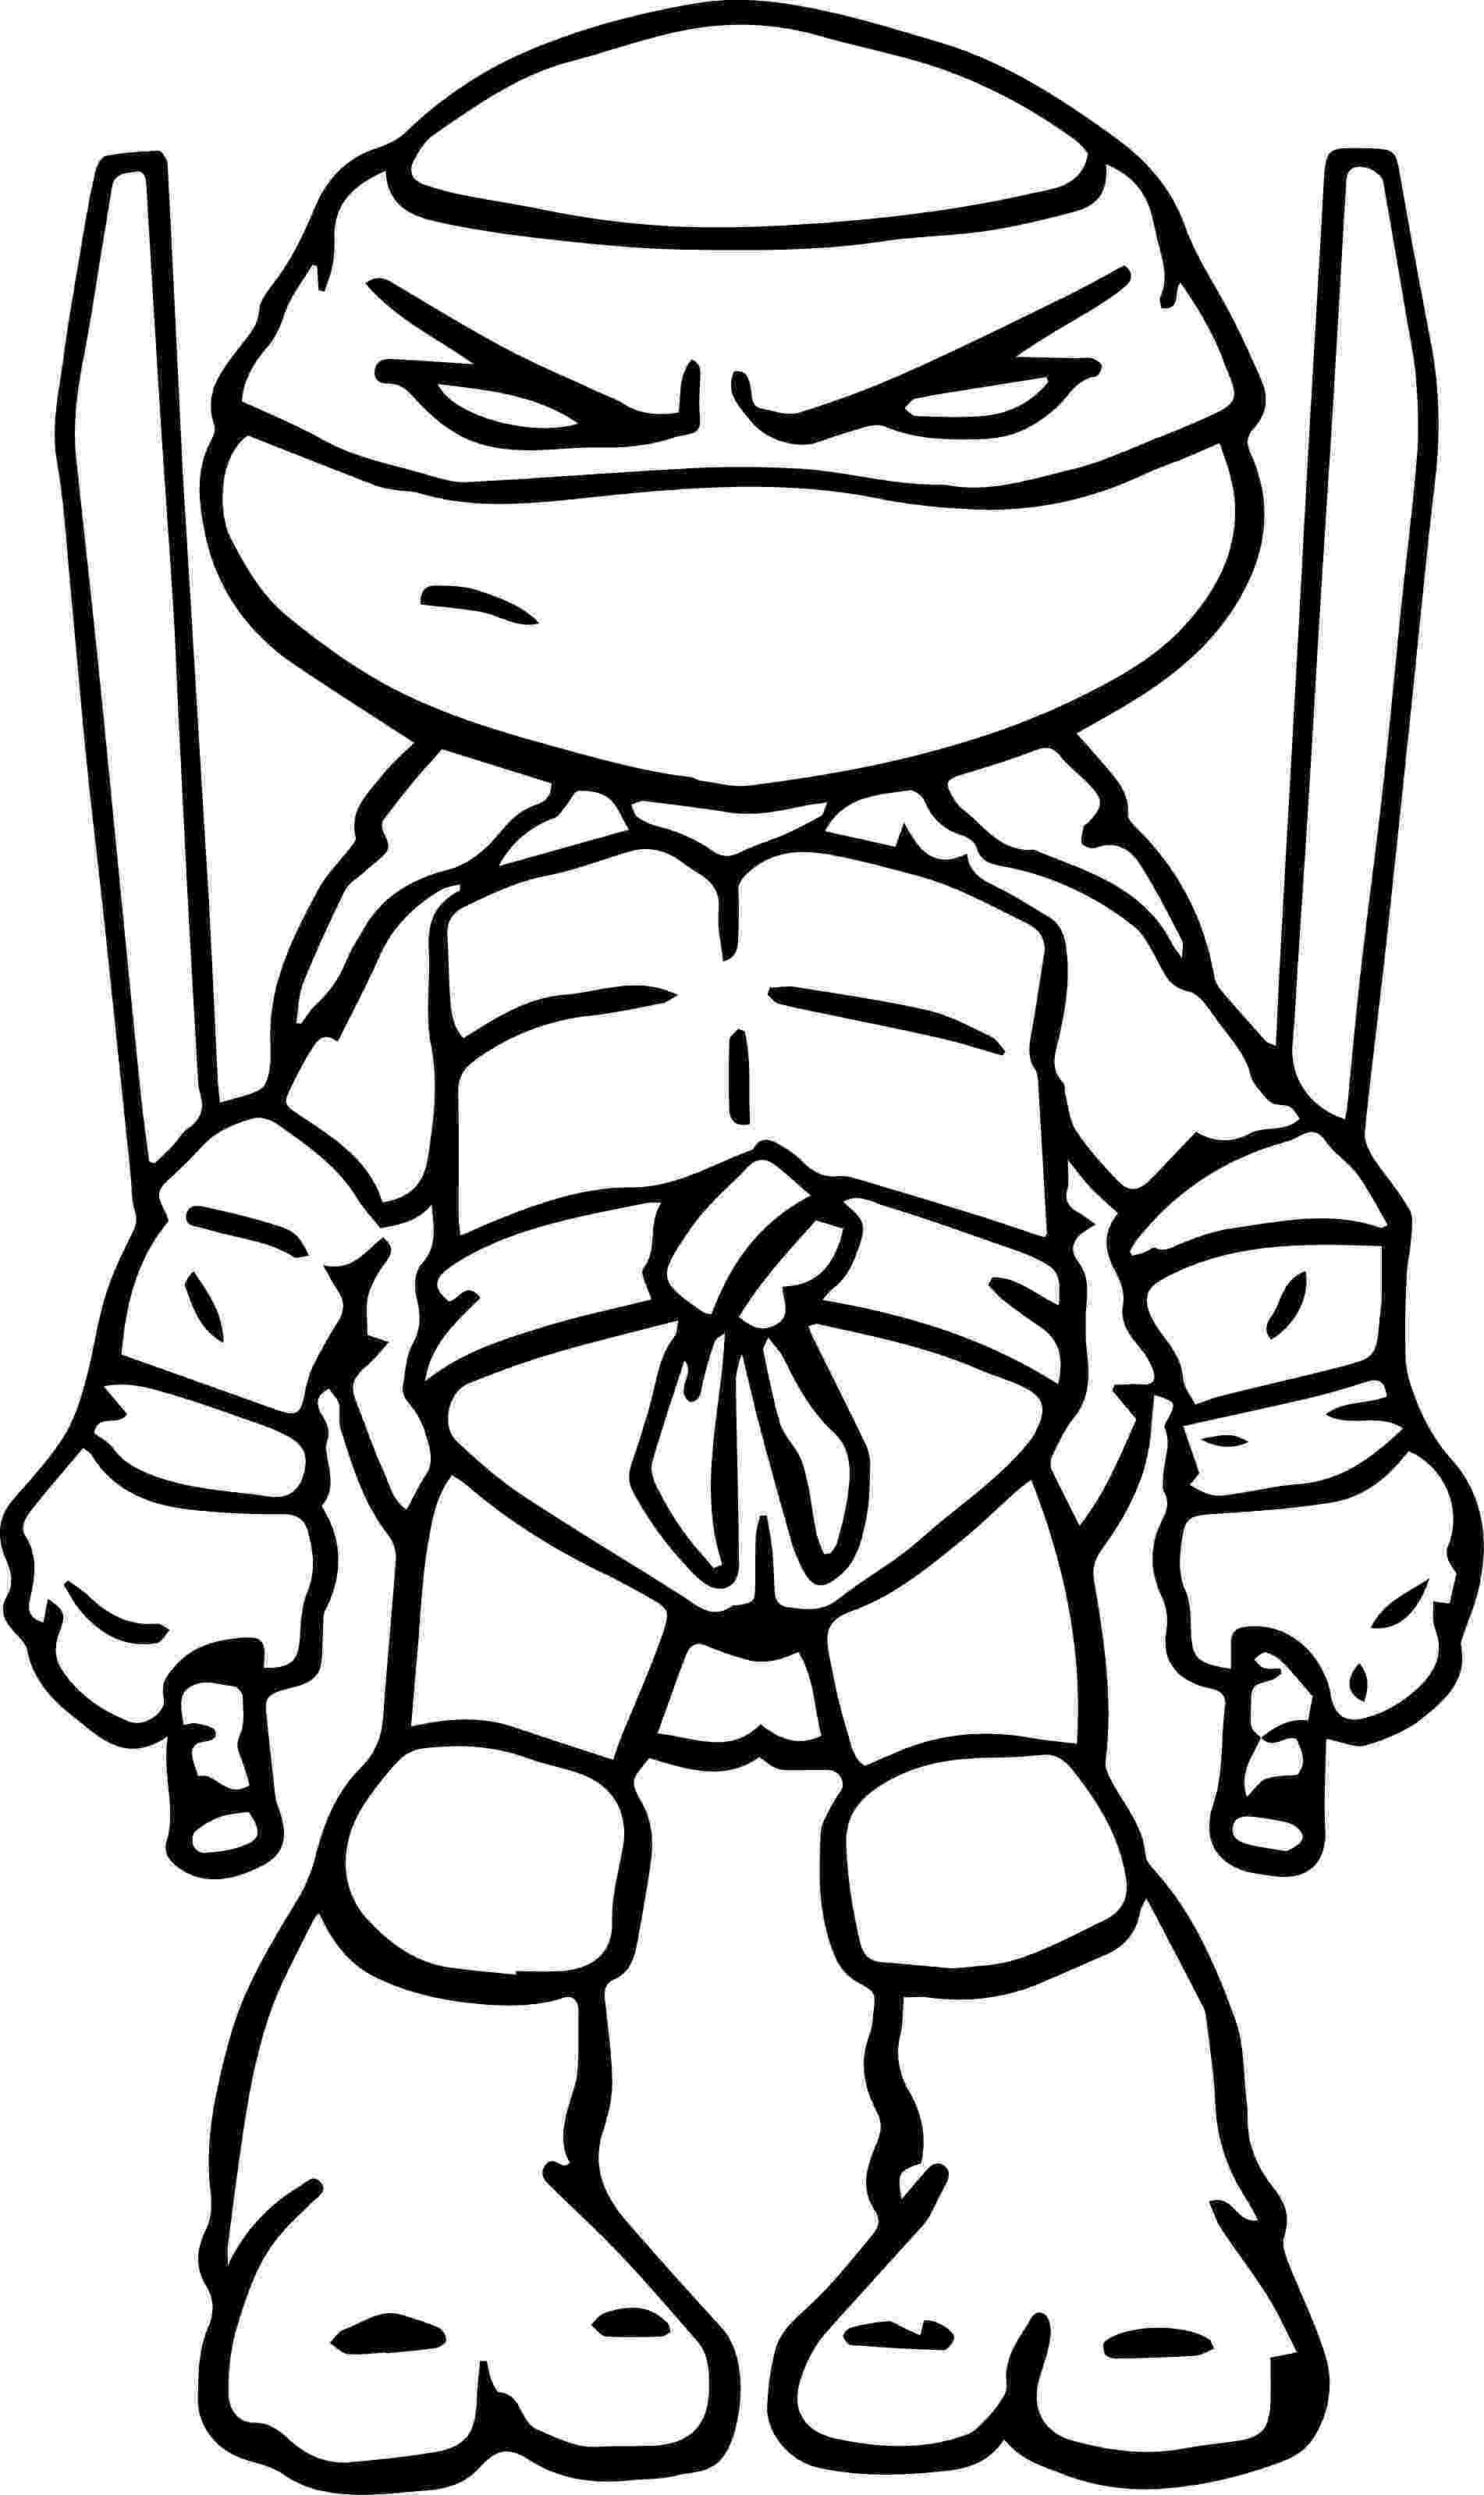 tmnt coloring pictures tmnt coloring pages getcoloringpagescom pictures coloring tmnt